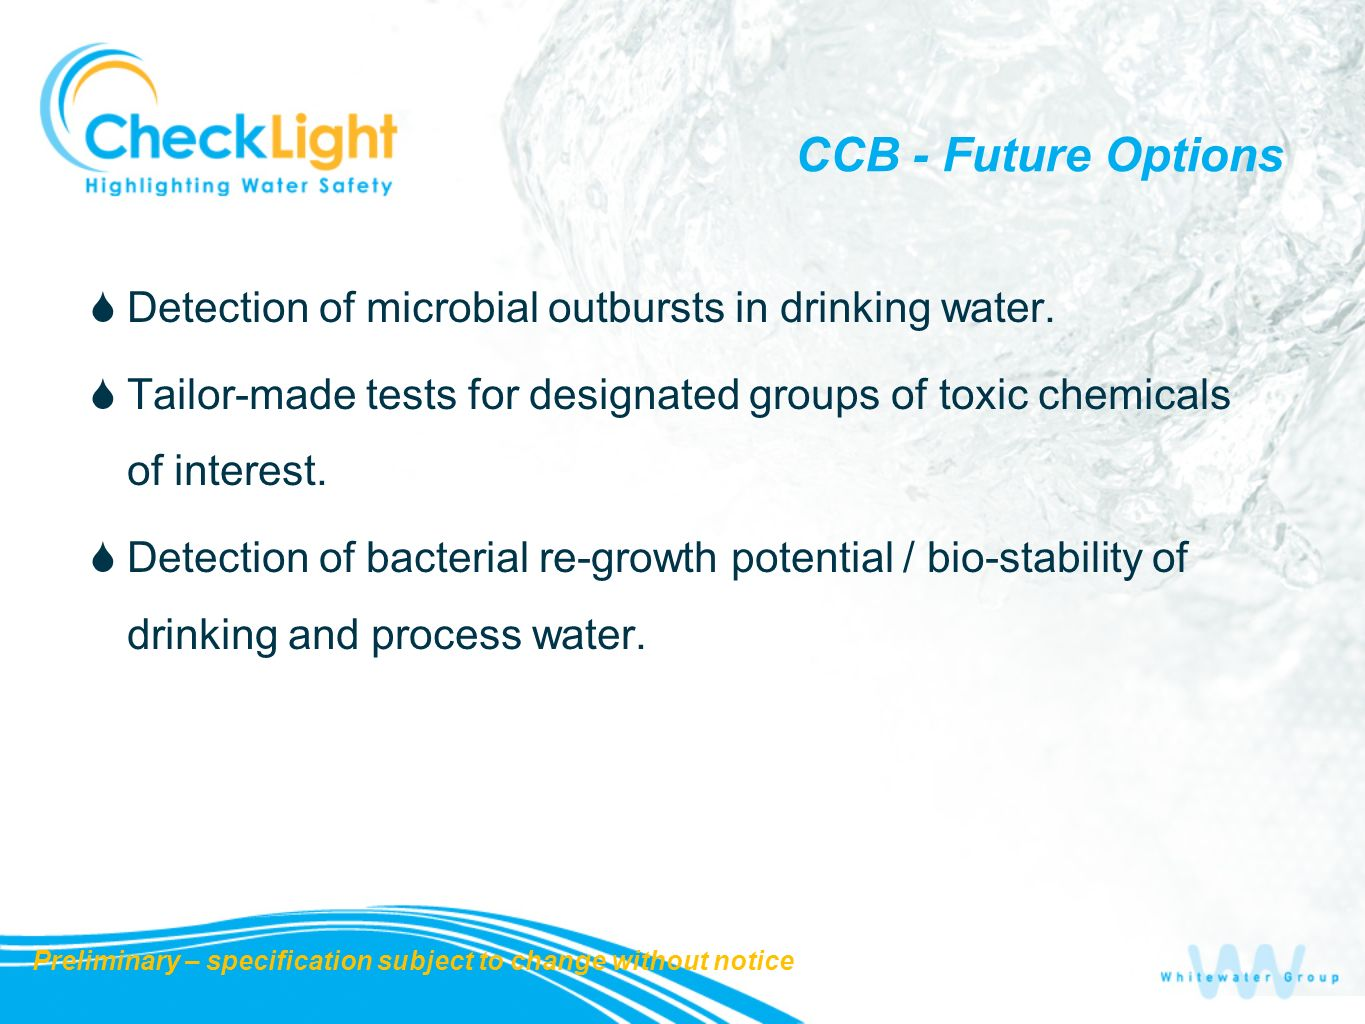 CCB - Future Options Detection of microbial outbursts in drinking water. Tailor-made tests for designated groups of toxic chemicals of interest. Detec